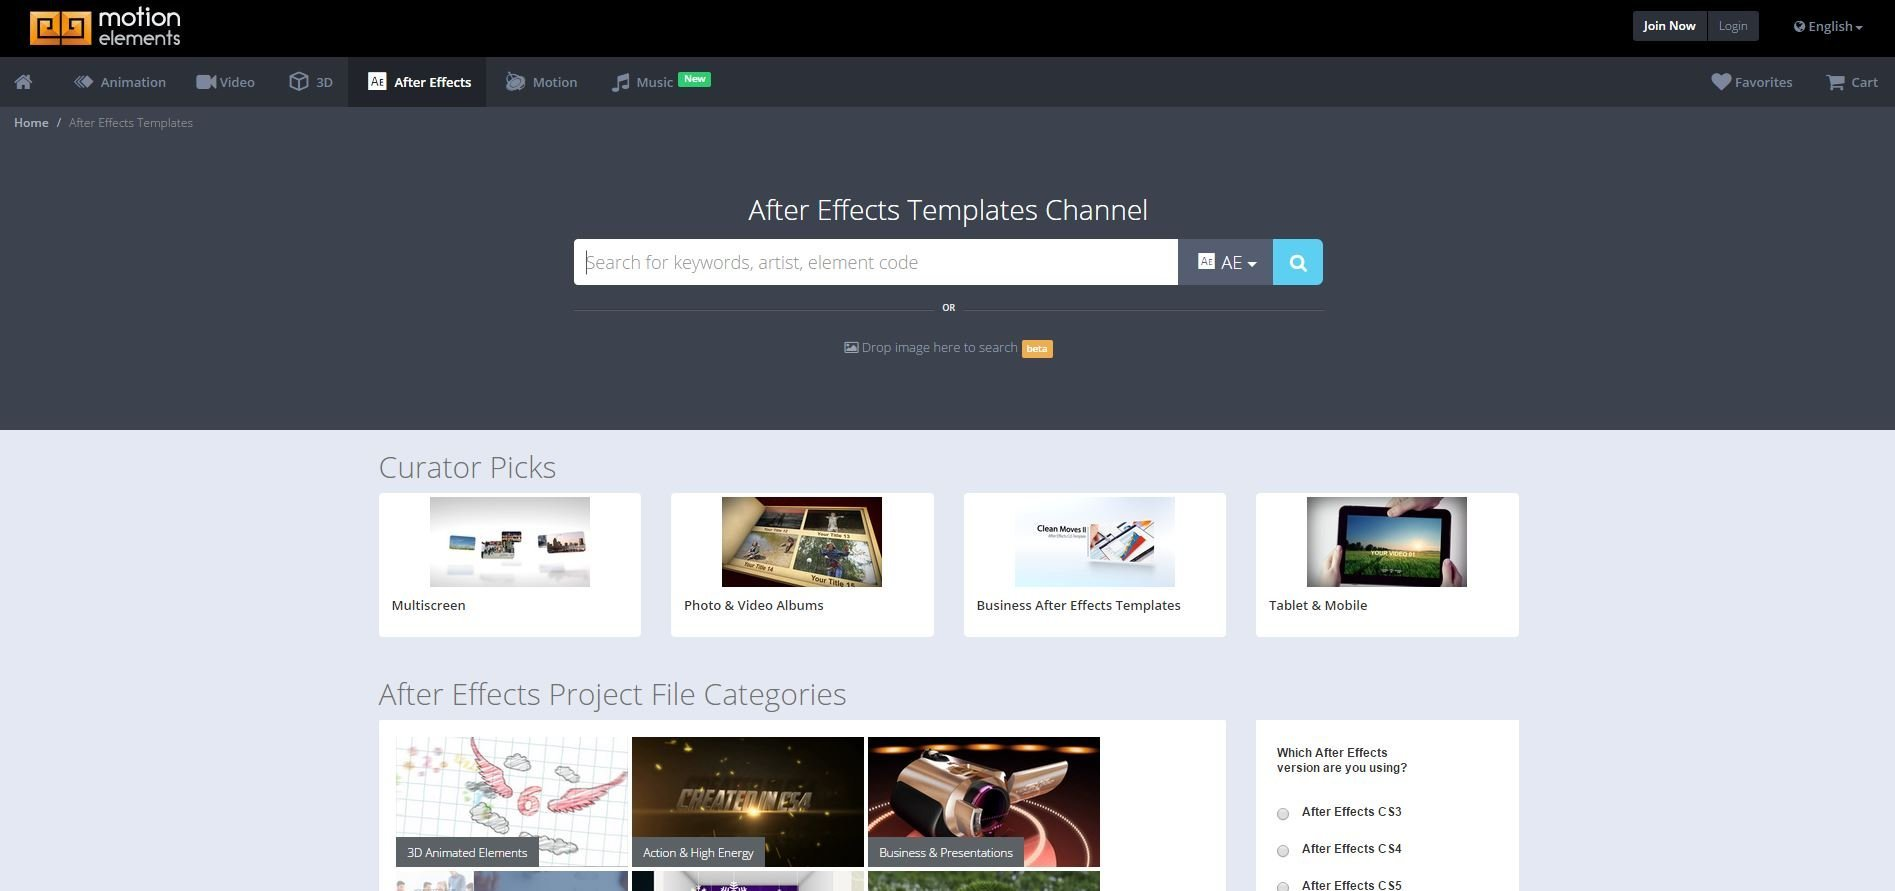 motion elements Websites That Offers After Effects Templates